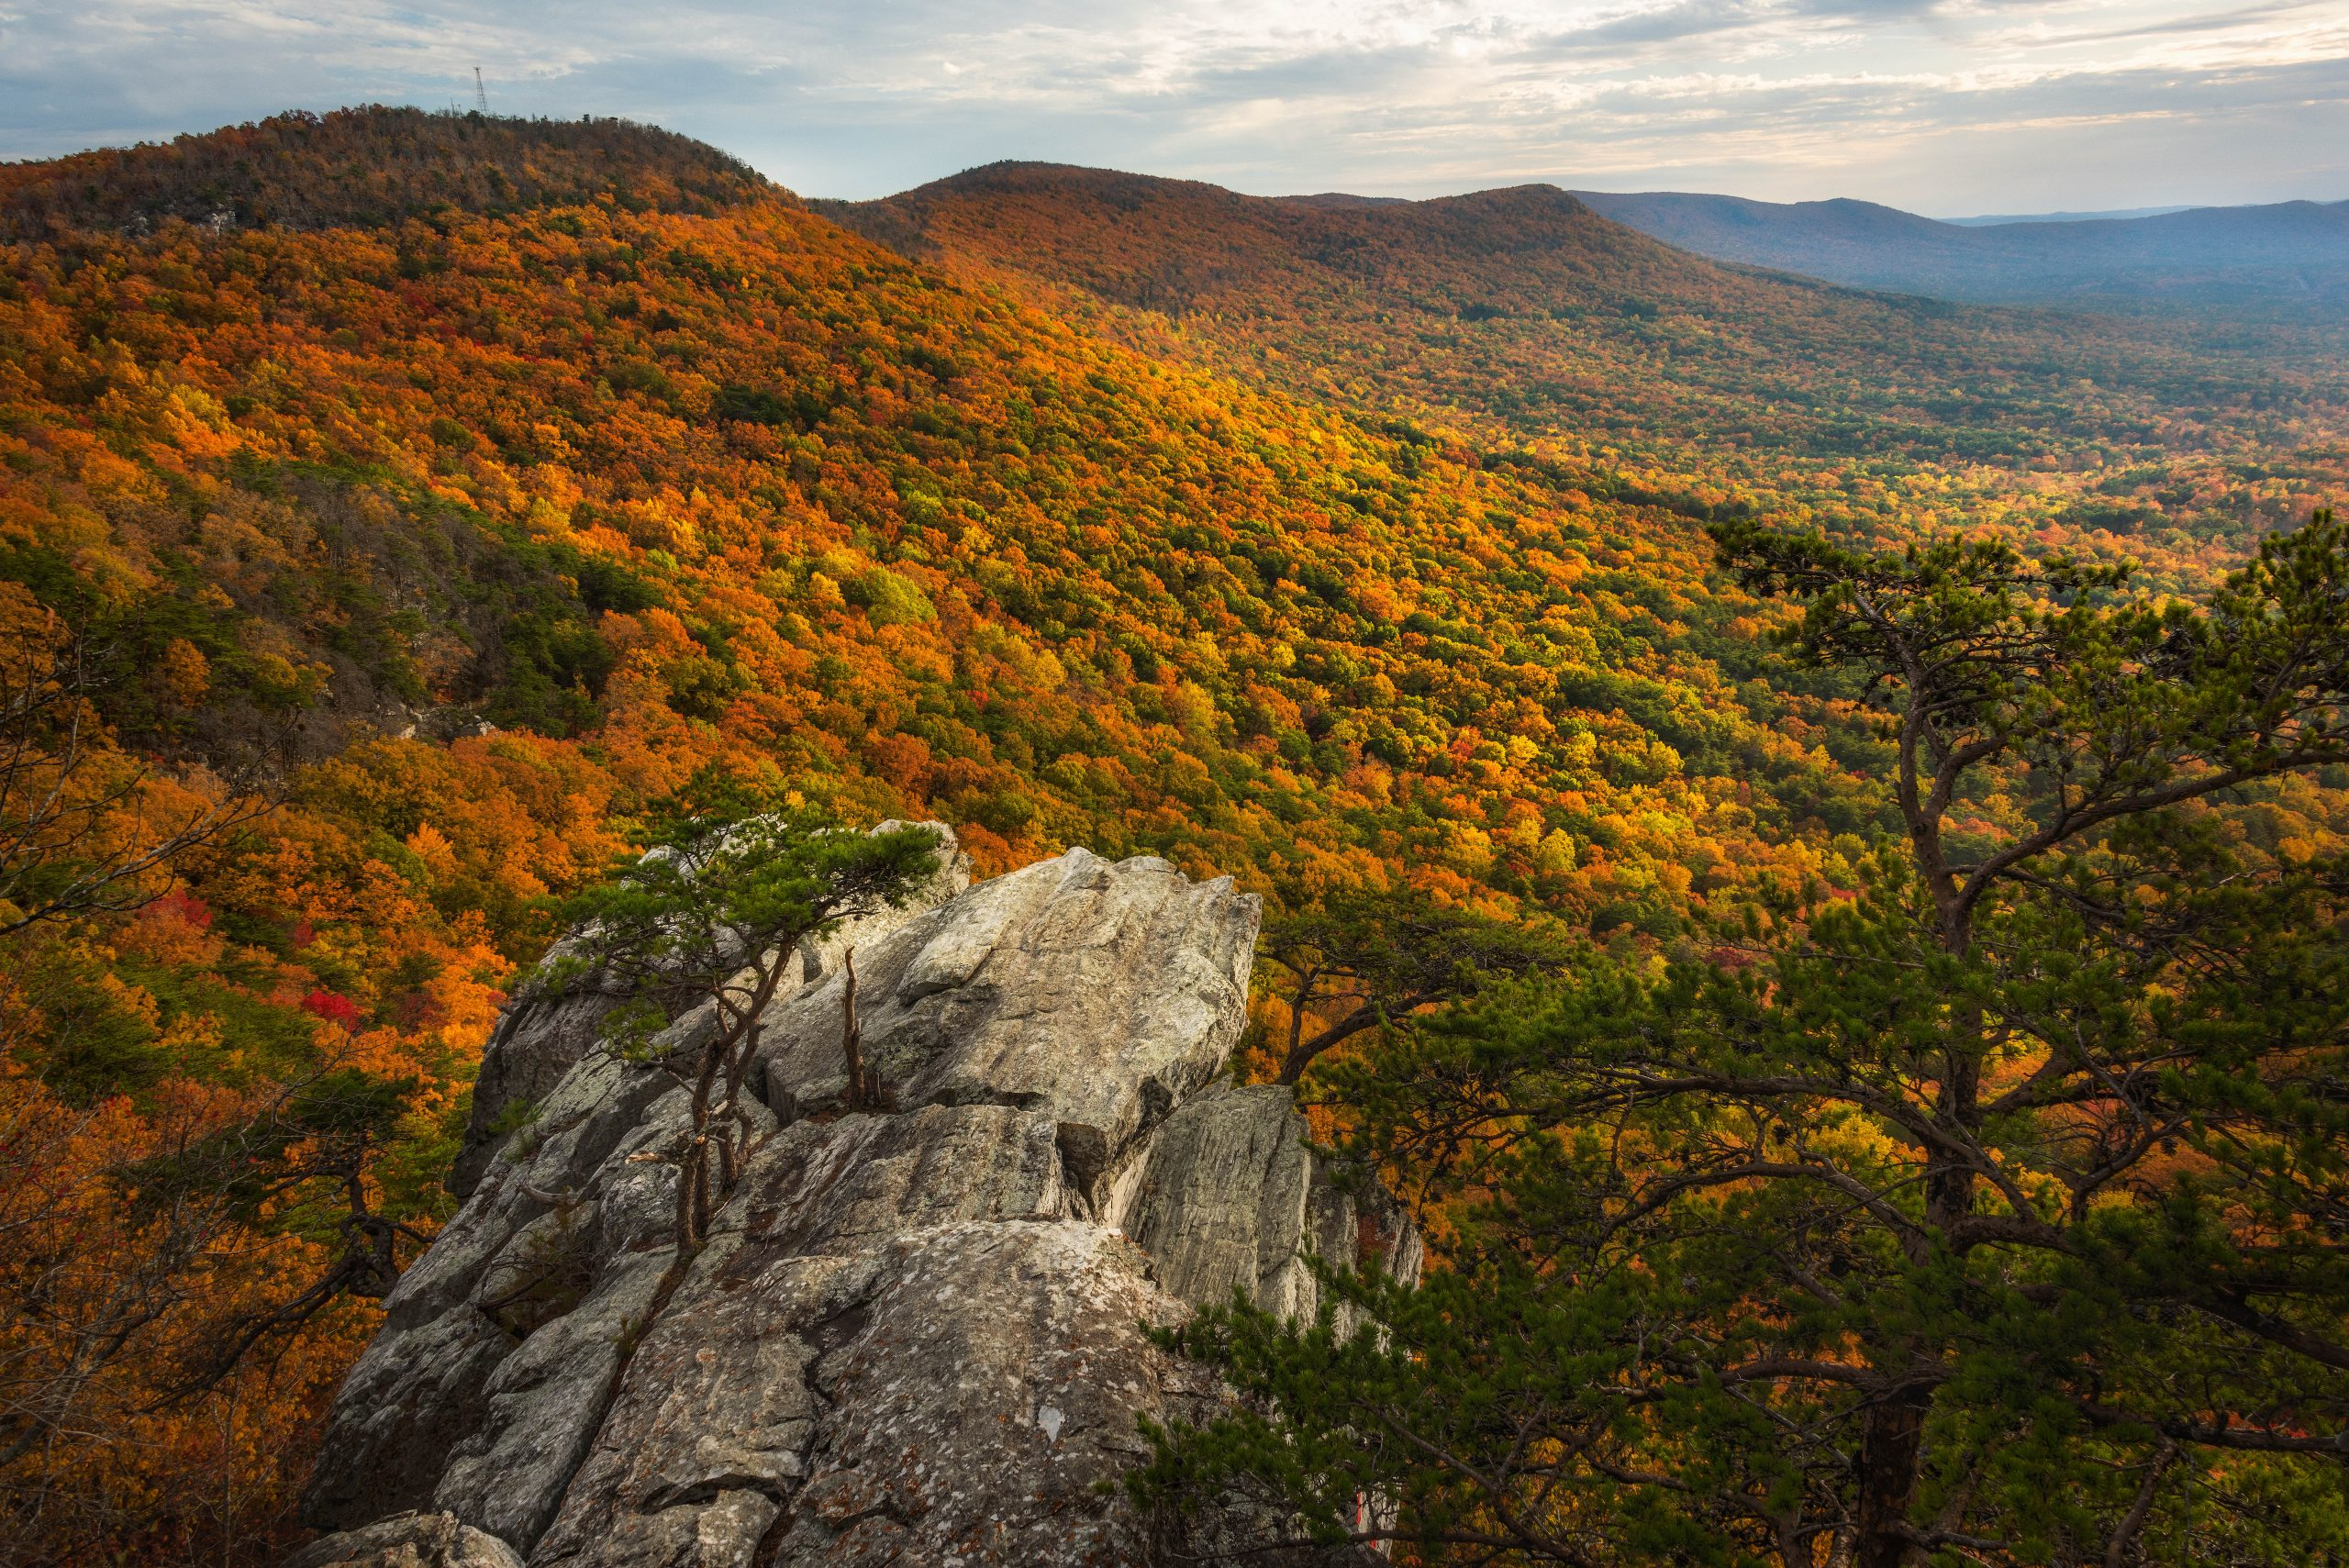 Outdoor Alabama Photo Contest opens August 2